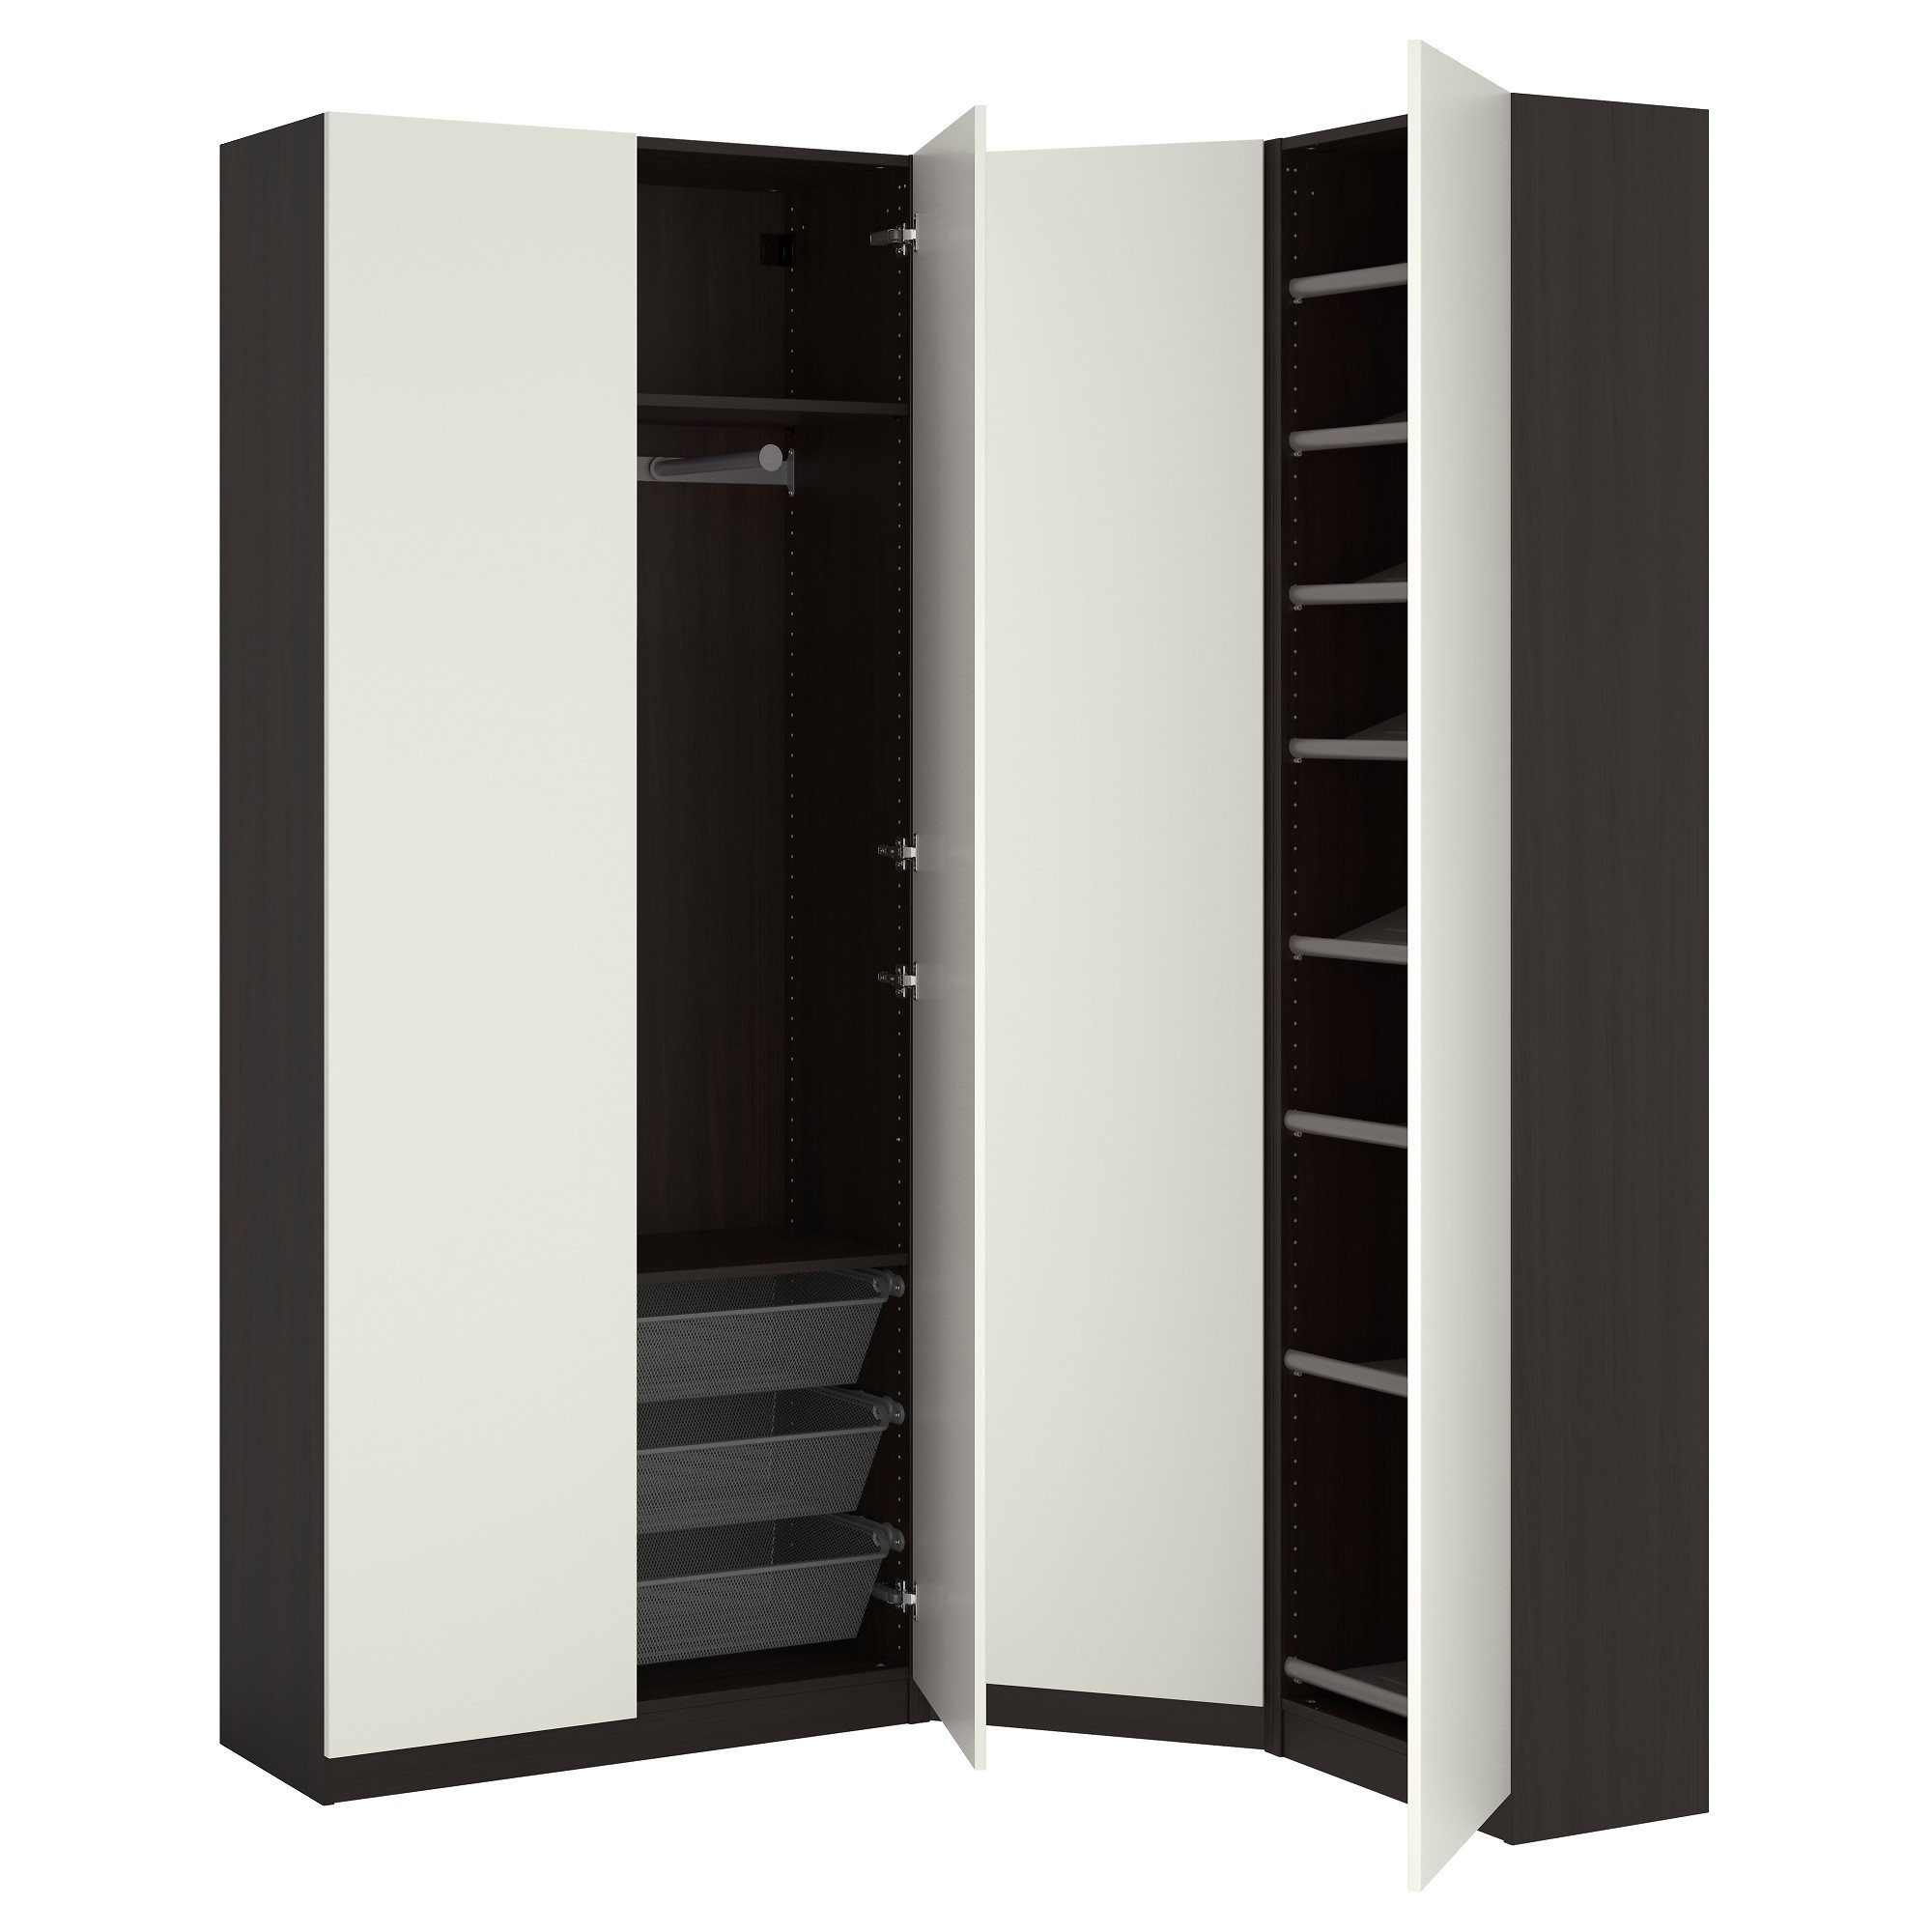 armoire d 39 angle chambre ikea armoire id es de. Black Bedroom Furniture Sets. Home Design Ideas